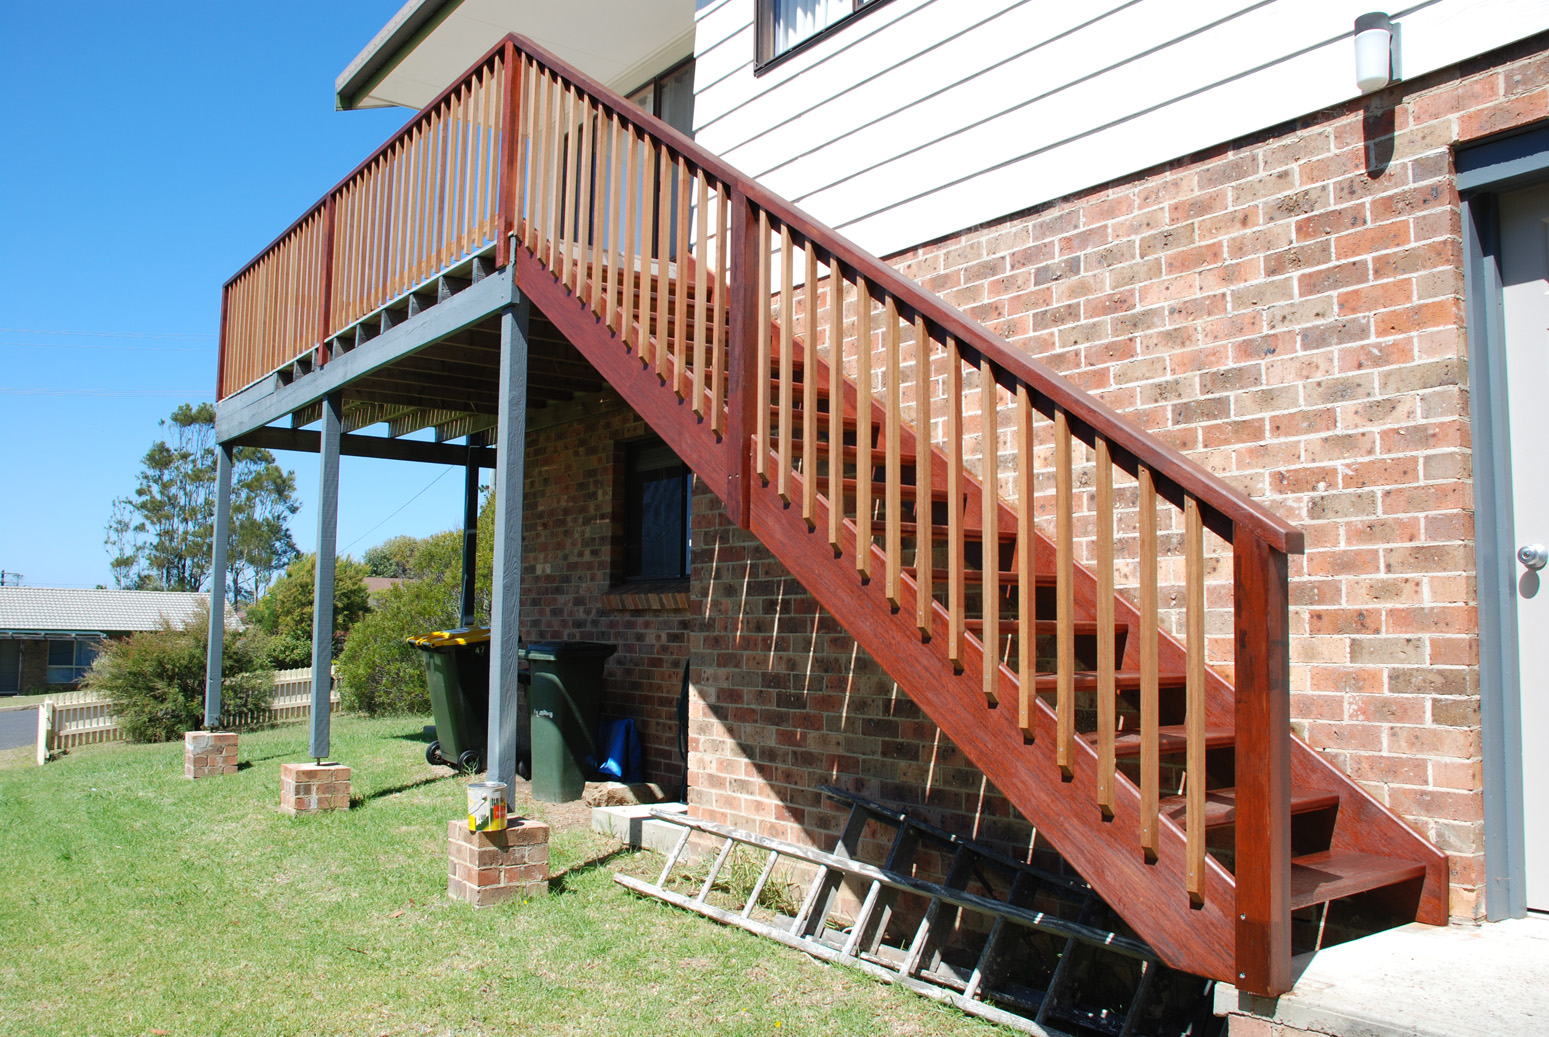 When You Have Stunning External Stairs In Your Backyard…